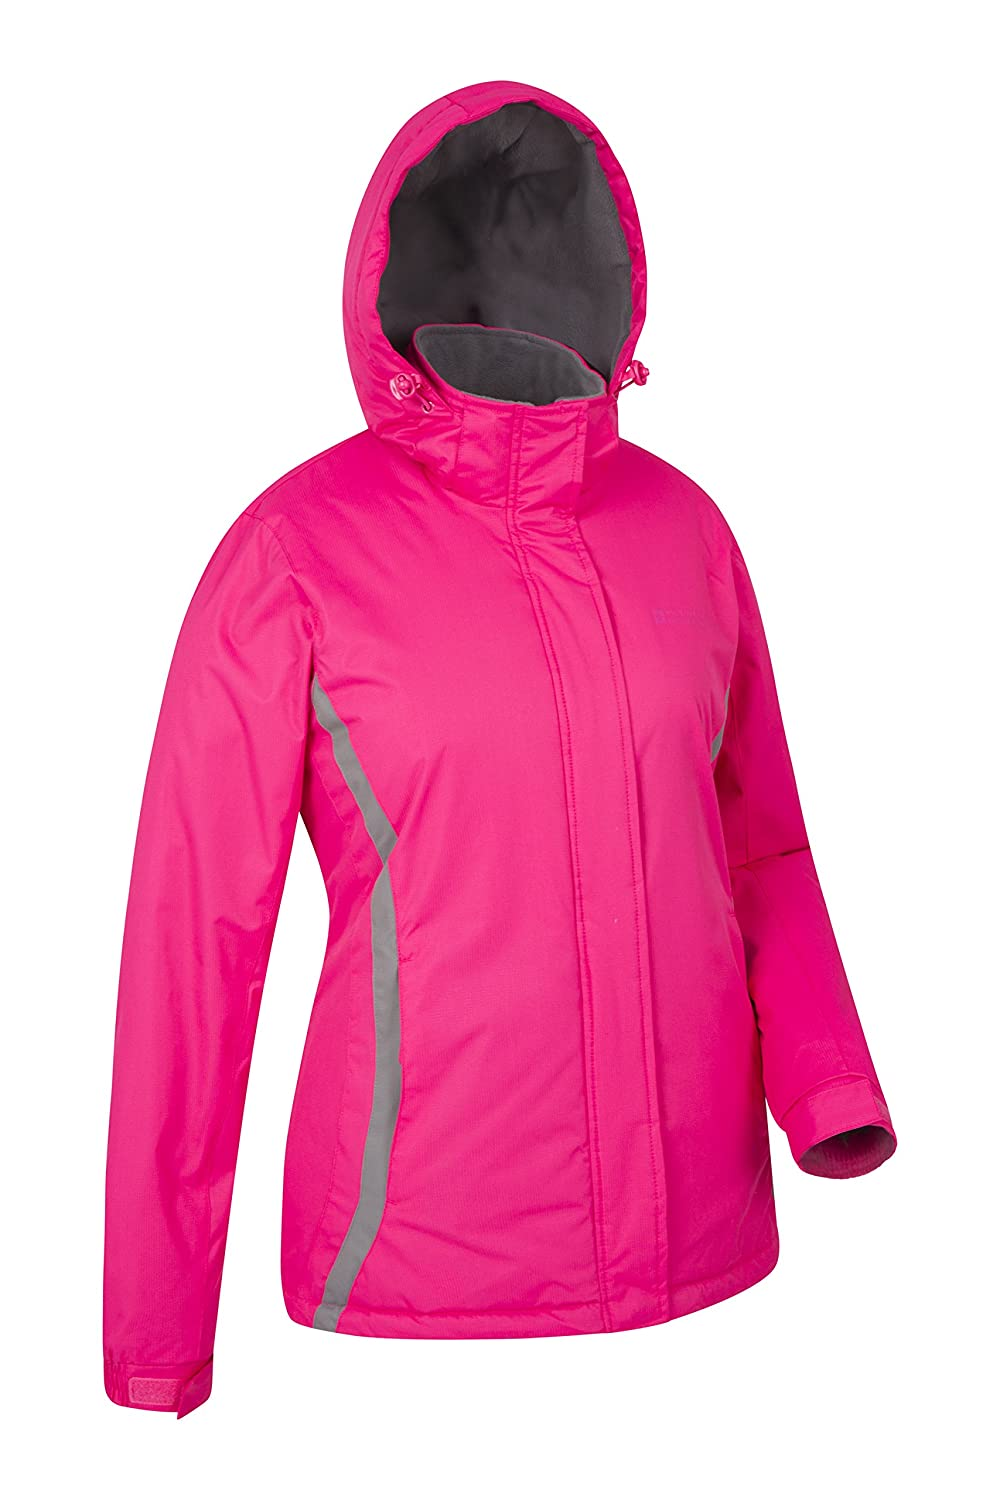 ... Moon Women s Ski Jacket - Water-Resistant with Insulated   Fleece  Lined c9dbd61f0